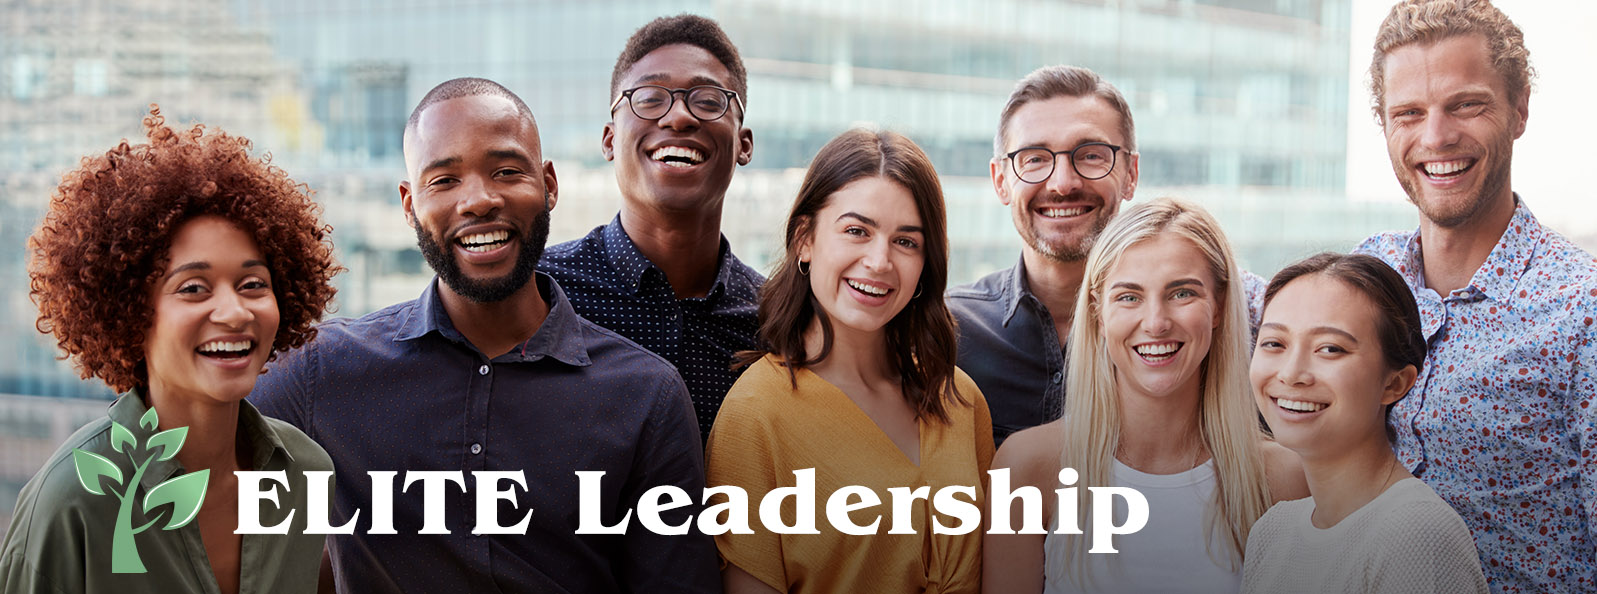 ELITE Leadership Online Certification Course